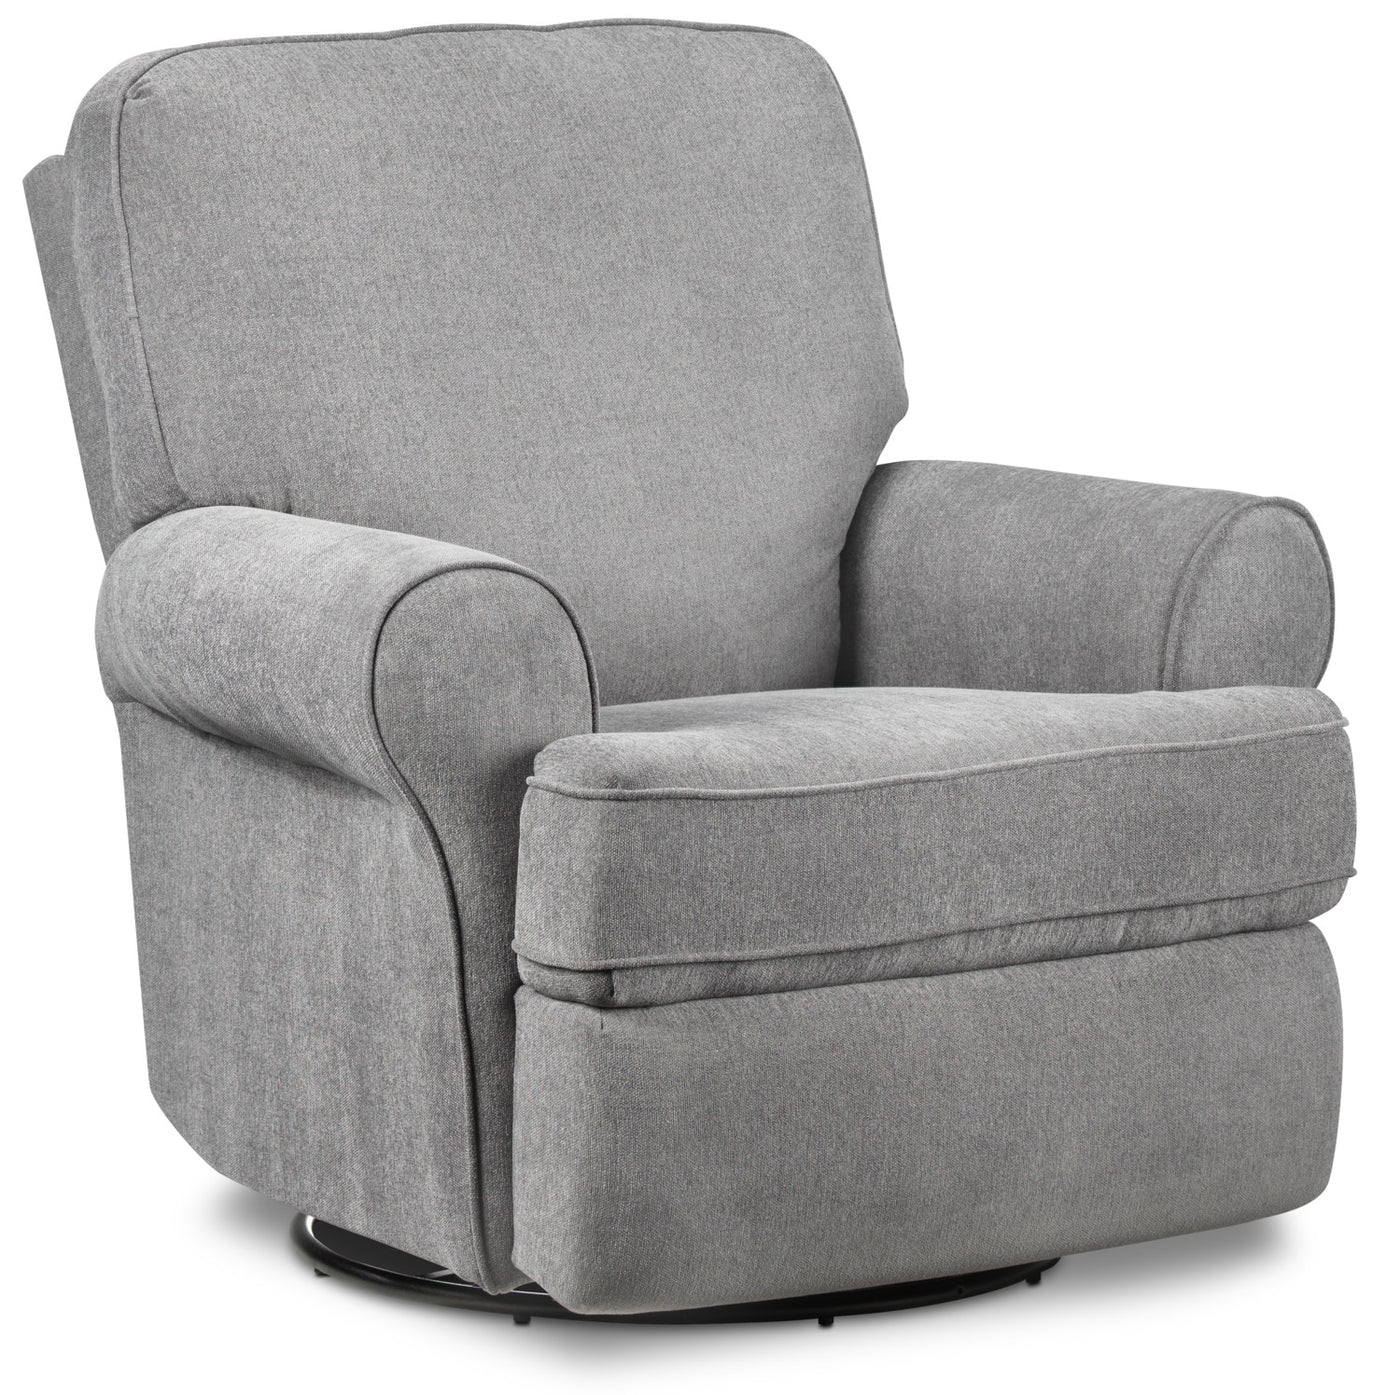 Gracie swivel glider recliner graphite touch to zoom